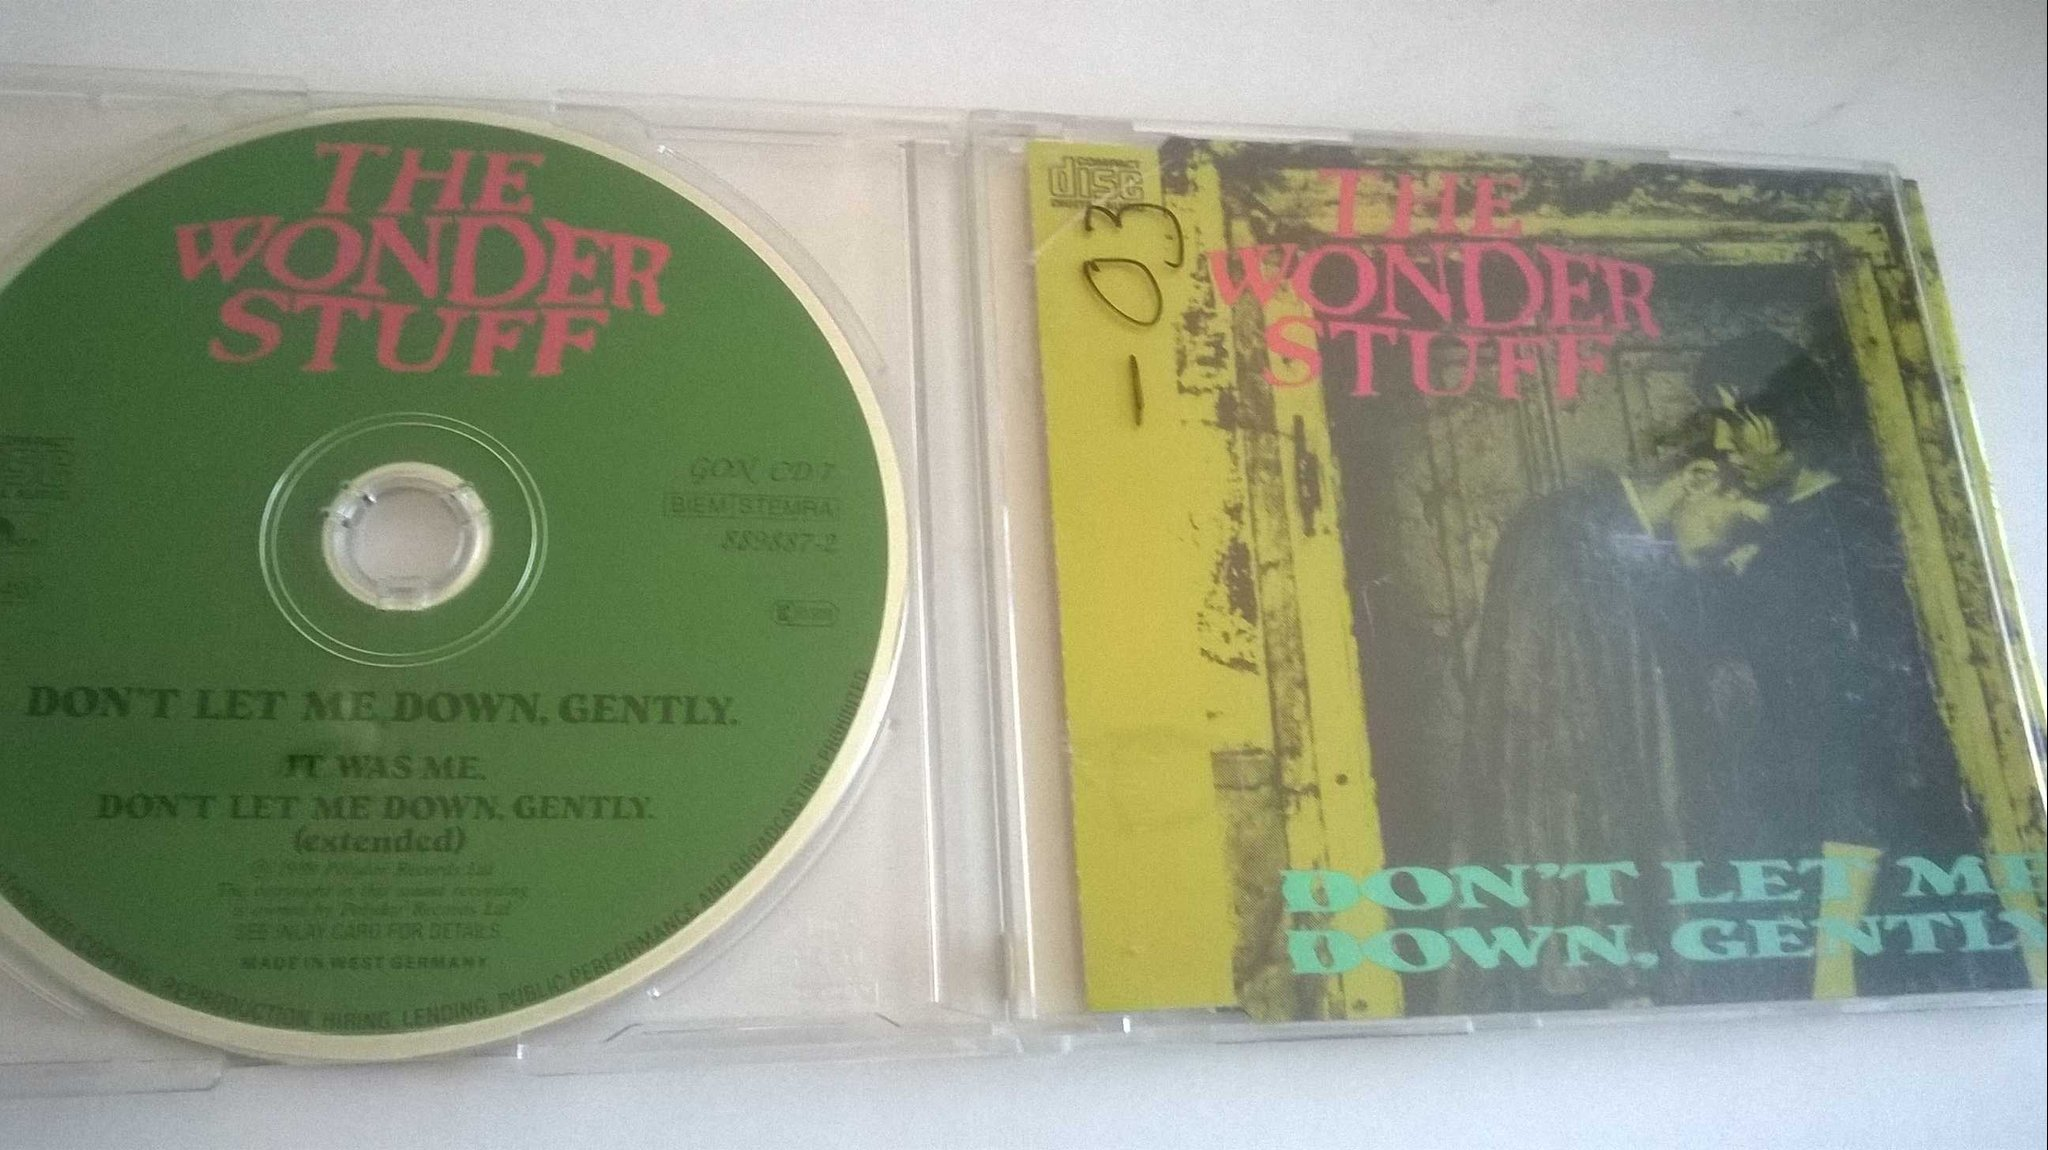 The Wonder Stuff - Don't Let Me Down, Gently, CD, Single